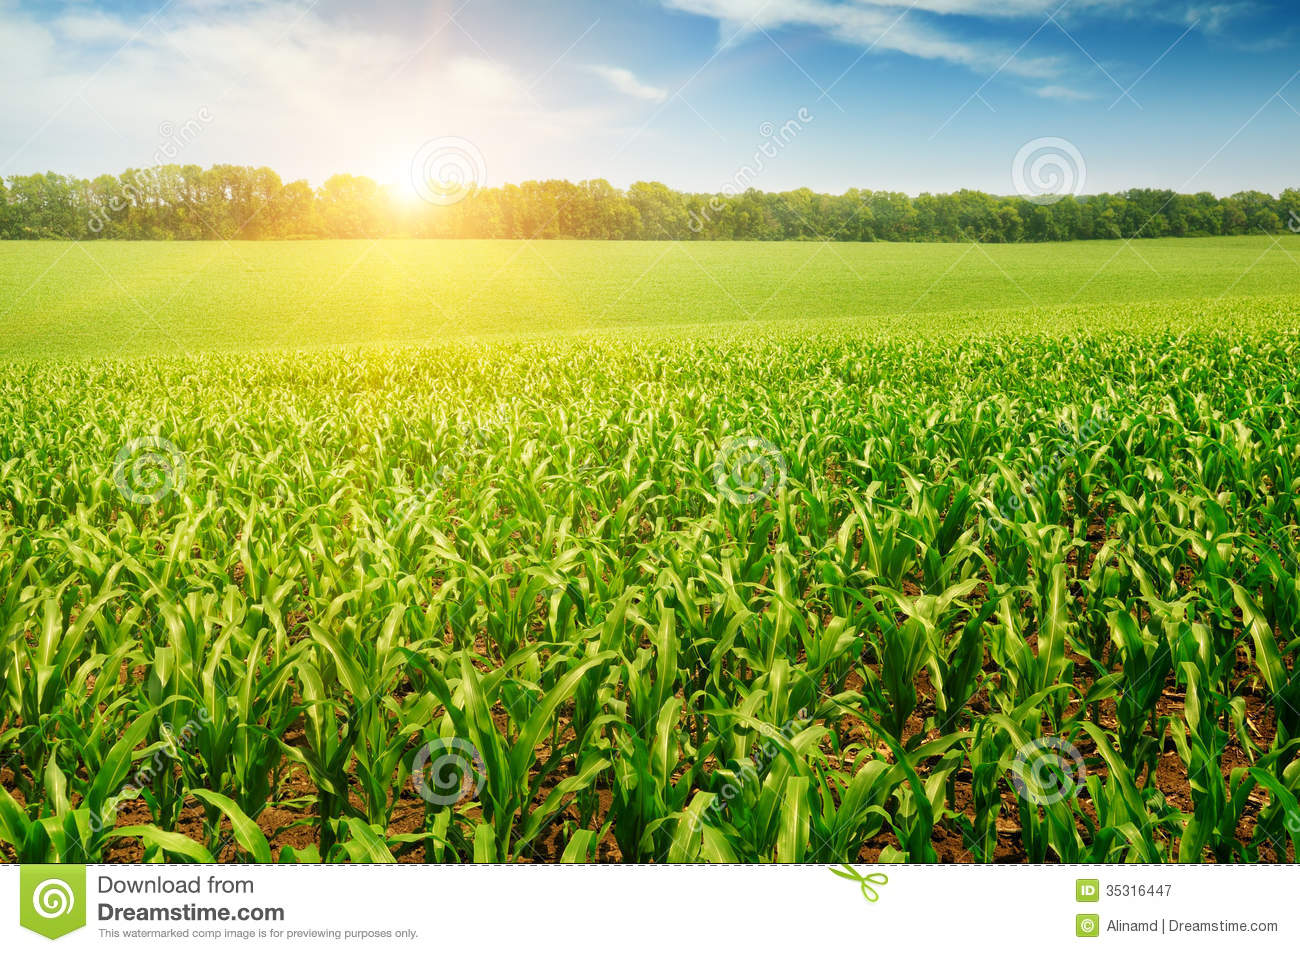 Corn field stock image. Image of clouds, morning, land ...